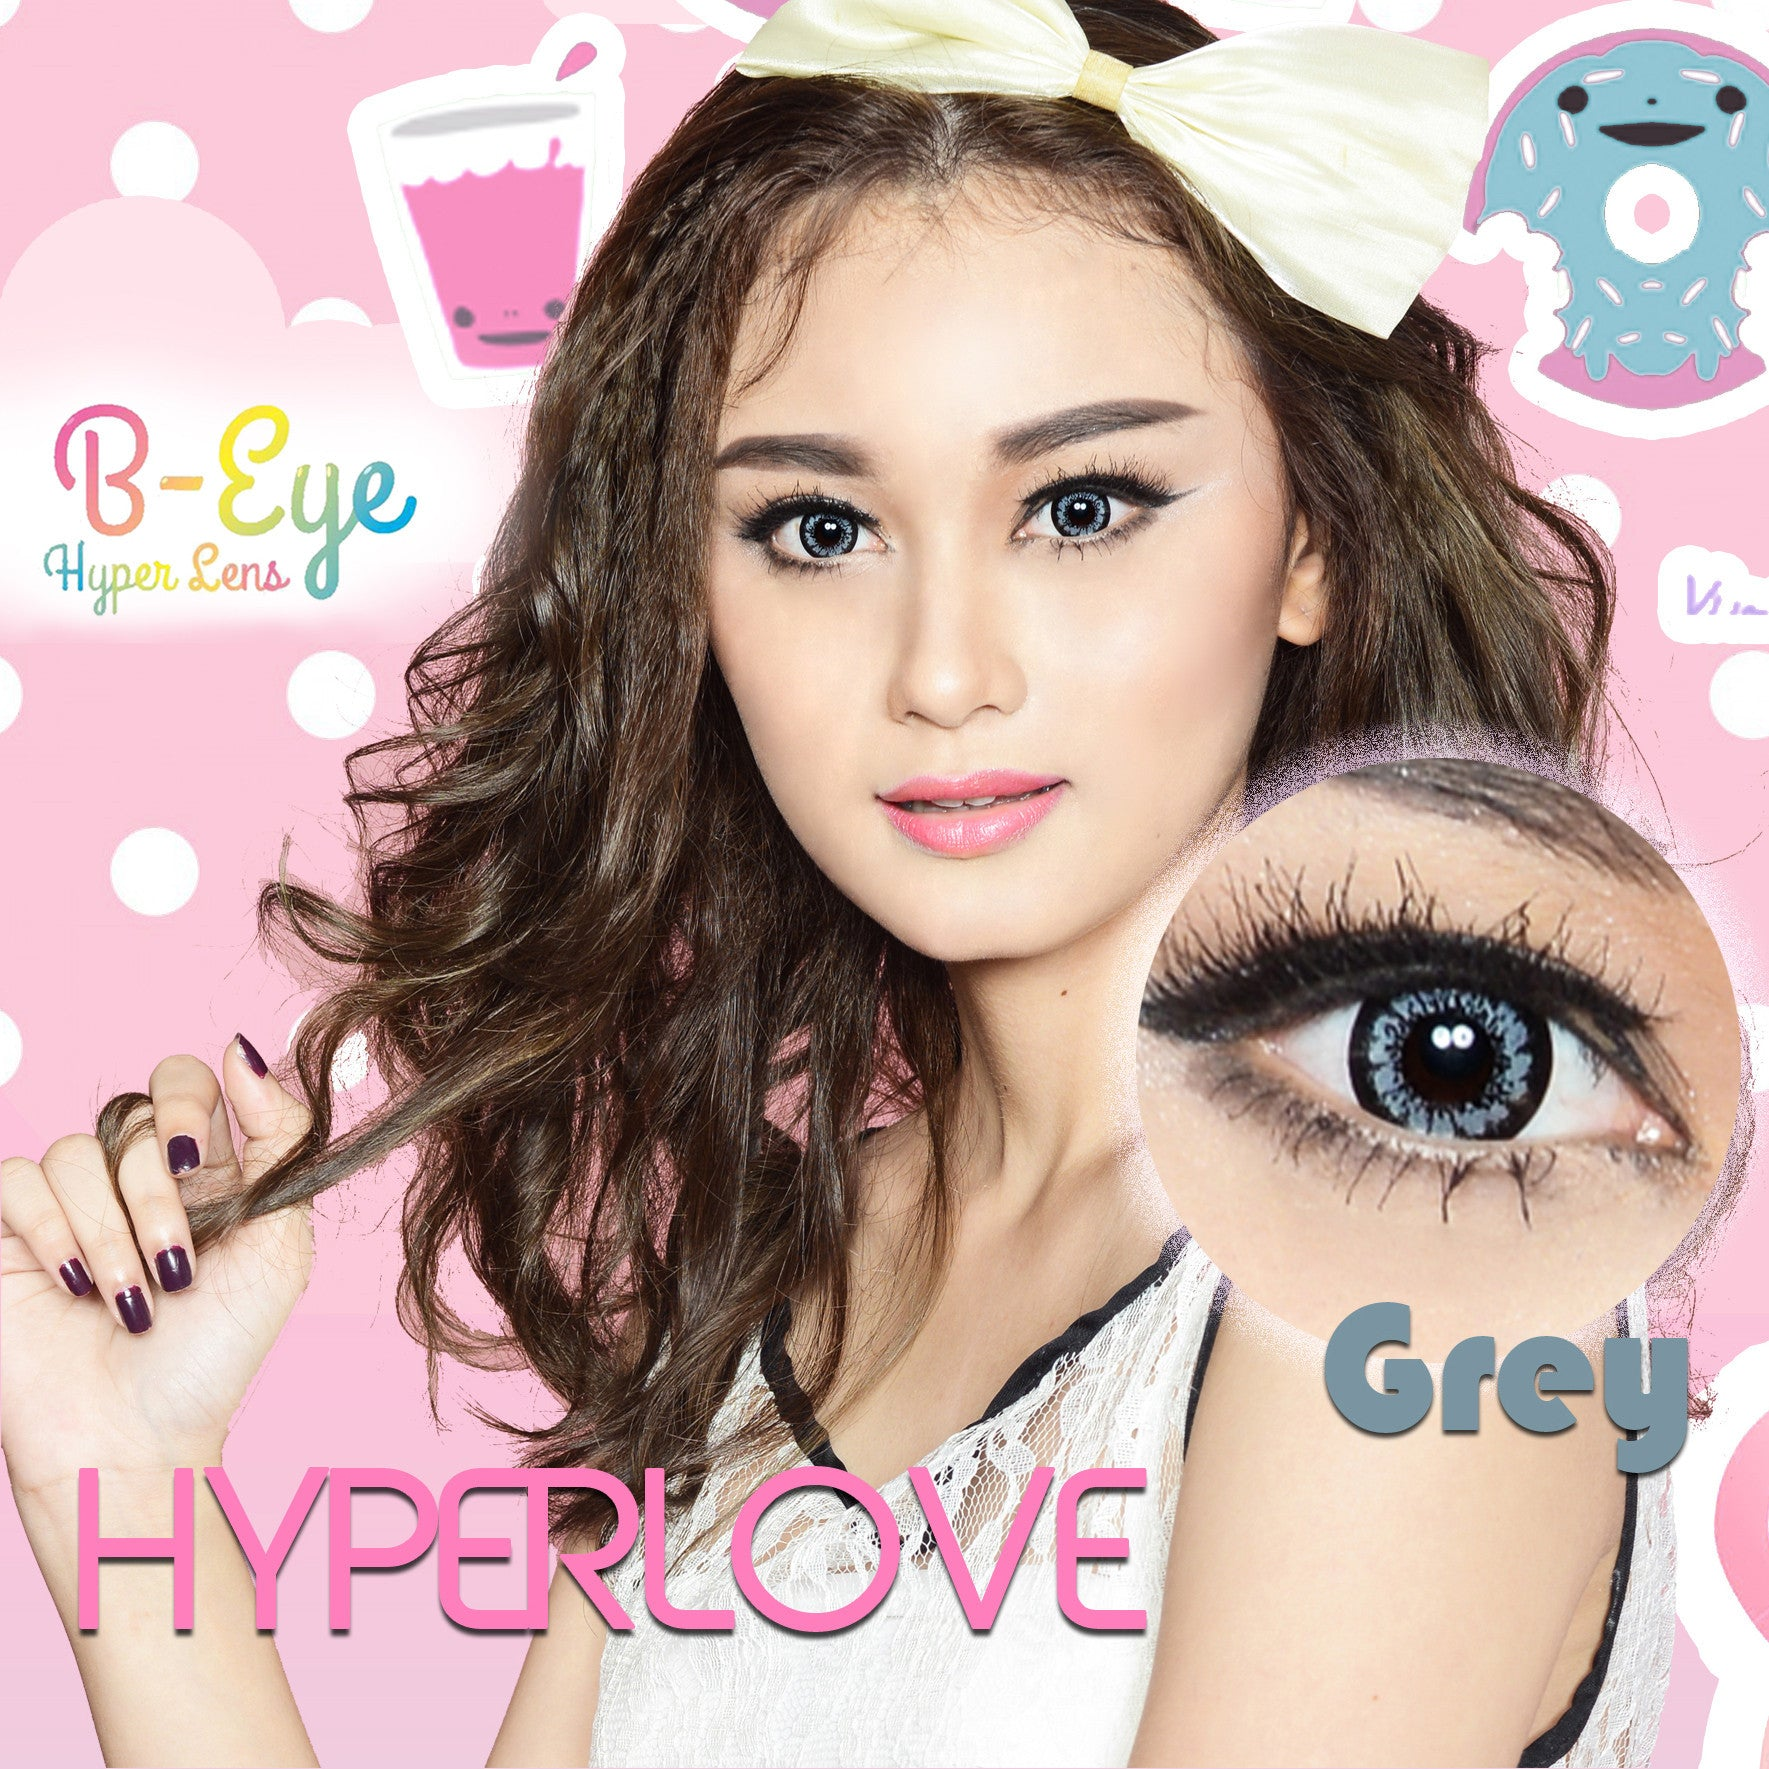 B-Eye Hyper Love Gray